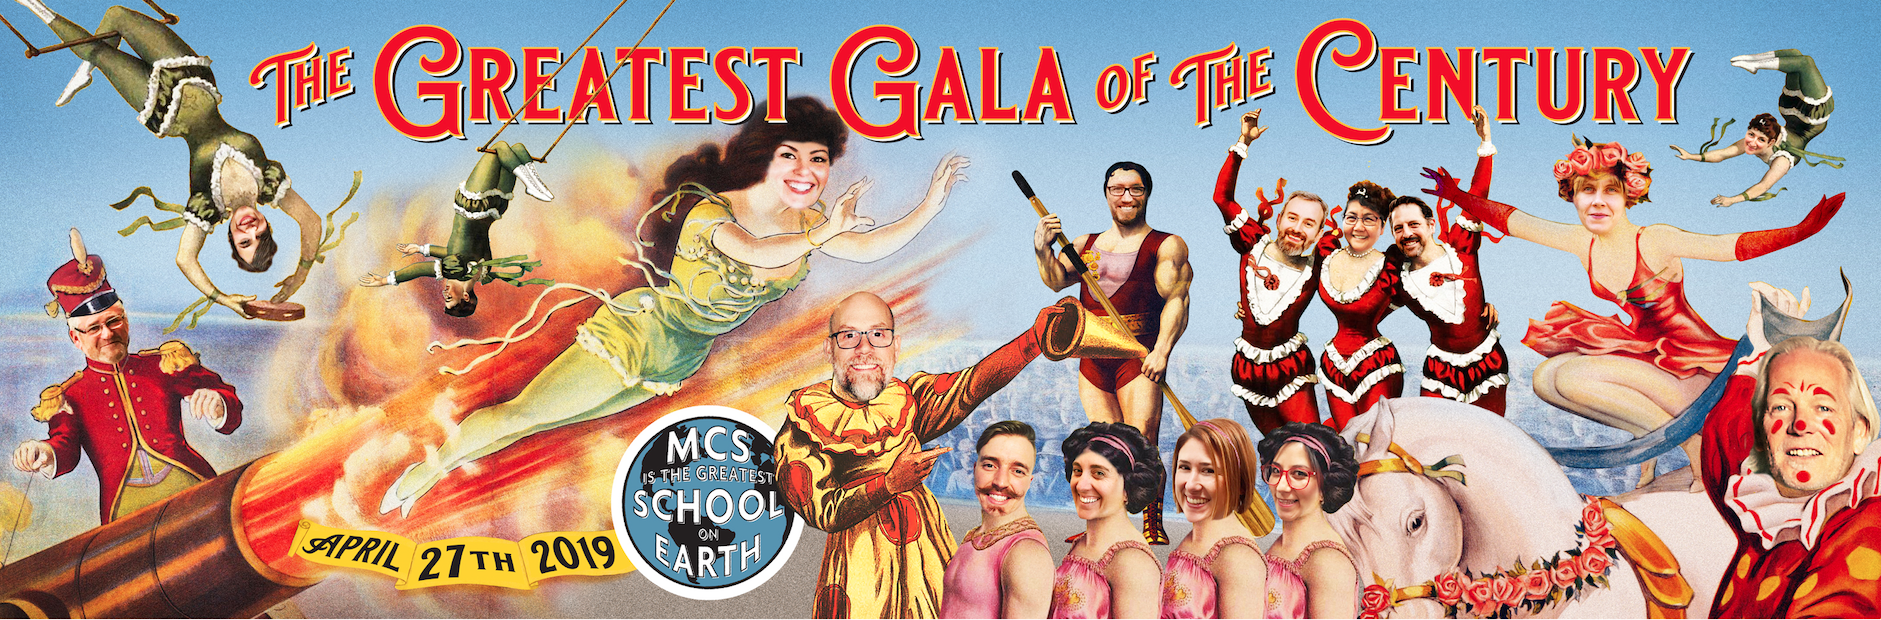 Support the MCS 2019 Gala! Image